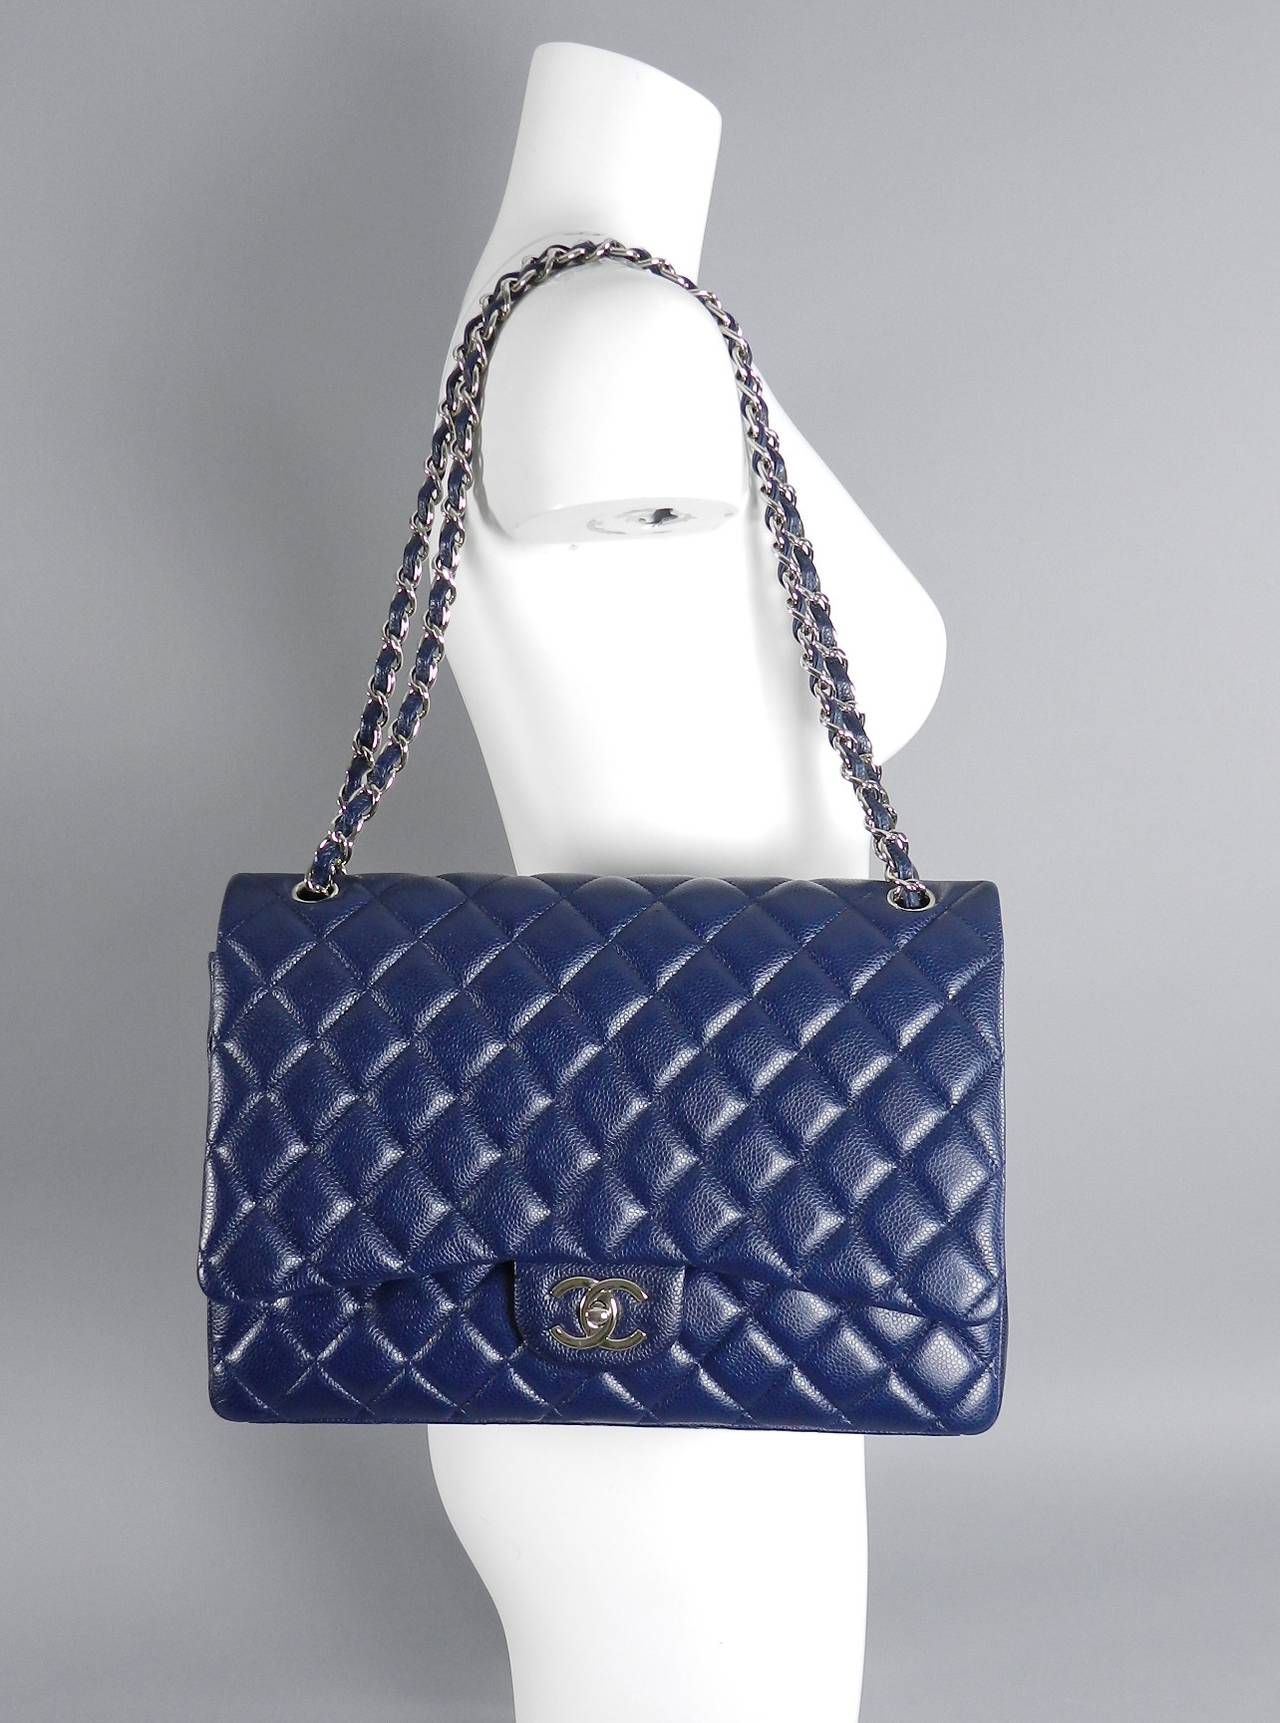 Chanel Navy Caviar Leather Maxi Size Bag Double Flap With Silvertone Hardware 15